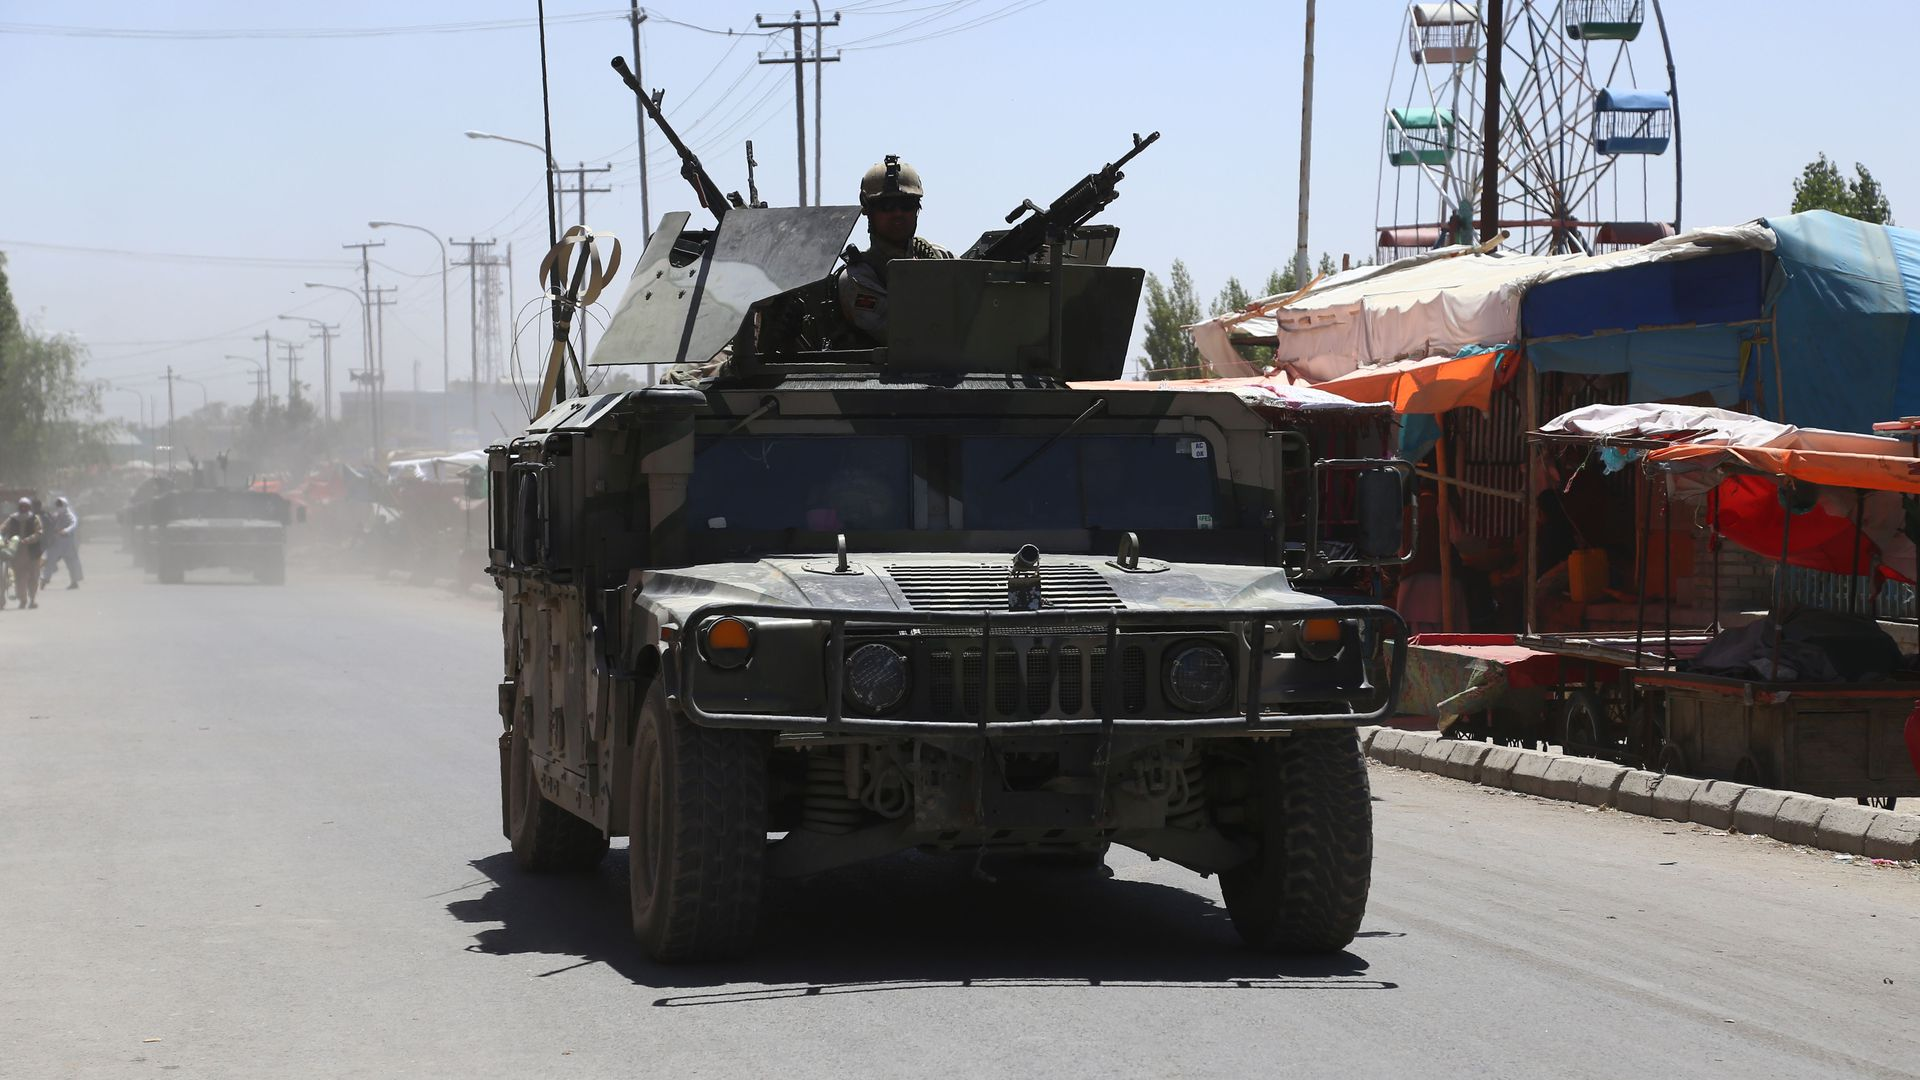 Afghan security forces drive in a tank.